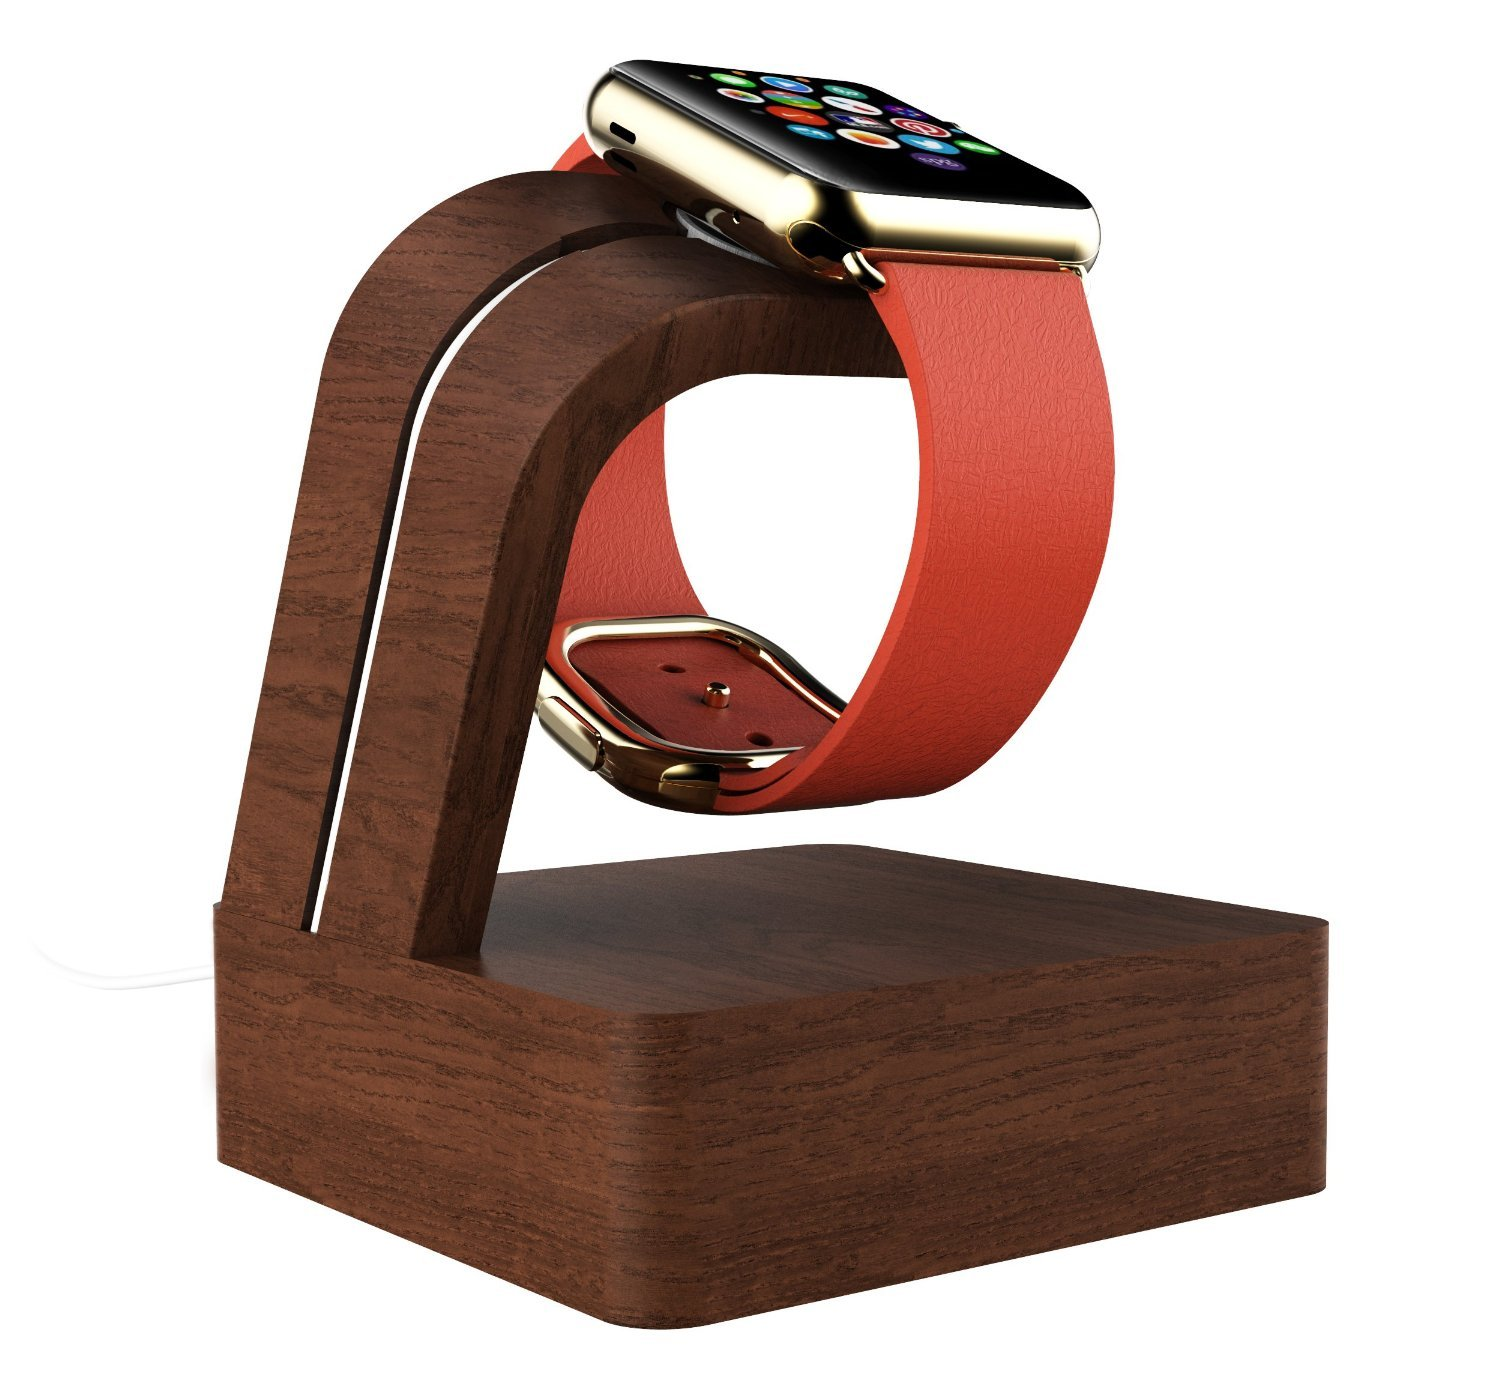 navitech-apple-watch-dock